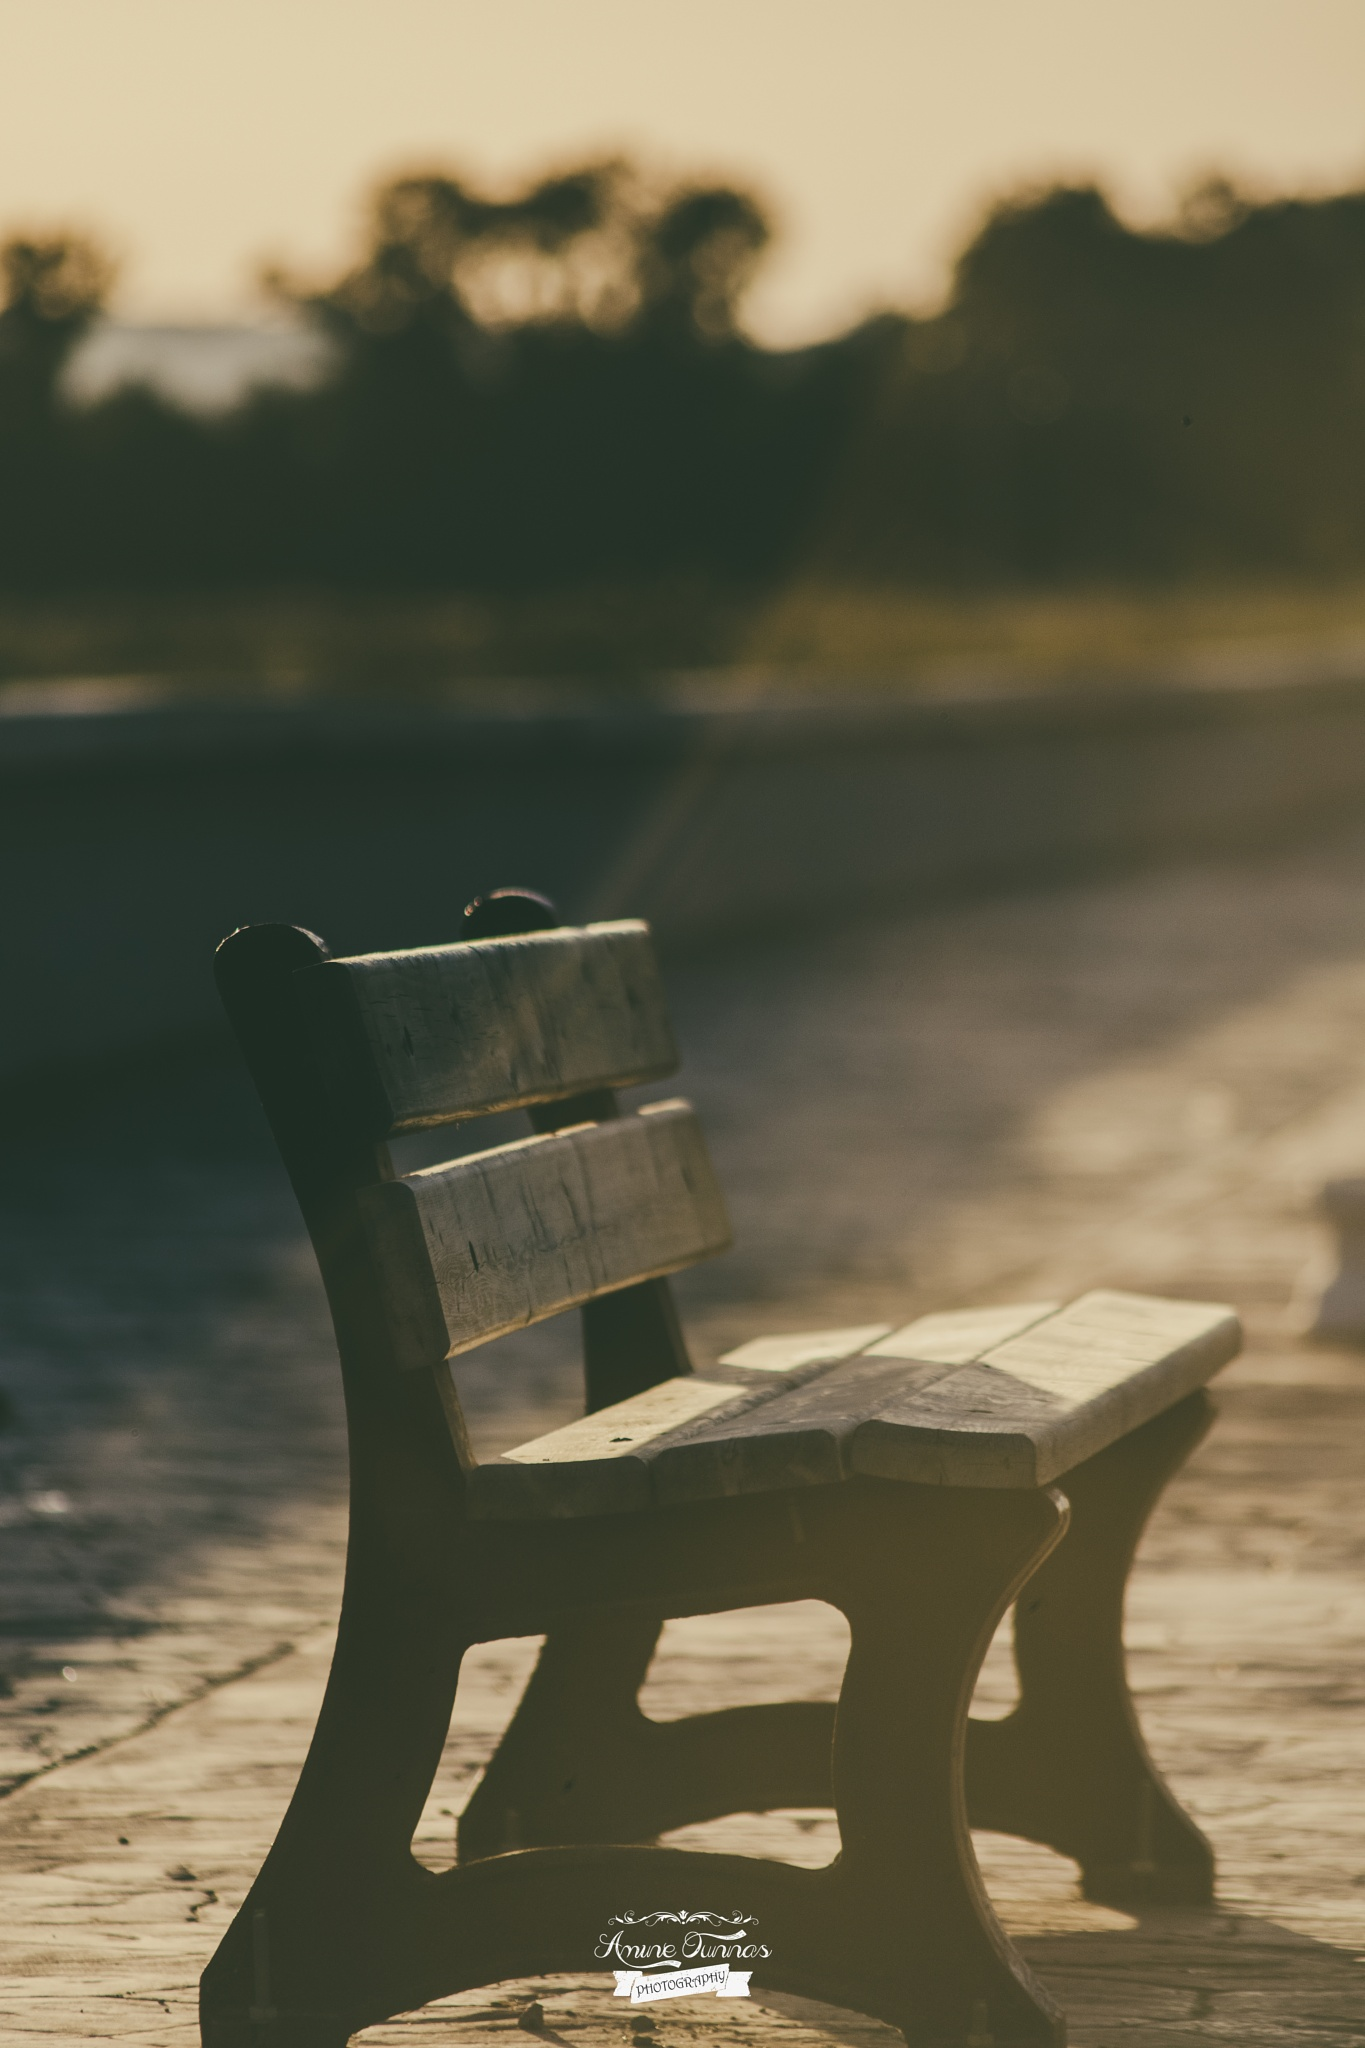 to that places, we strangers sit, and they never complain by amine ounnas